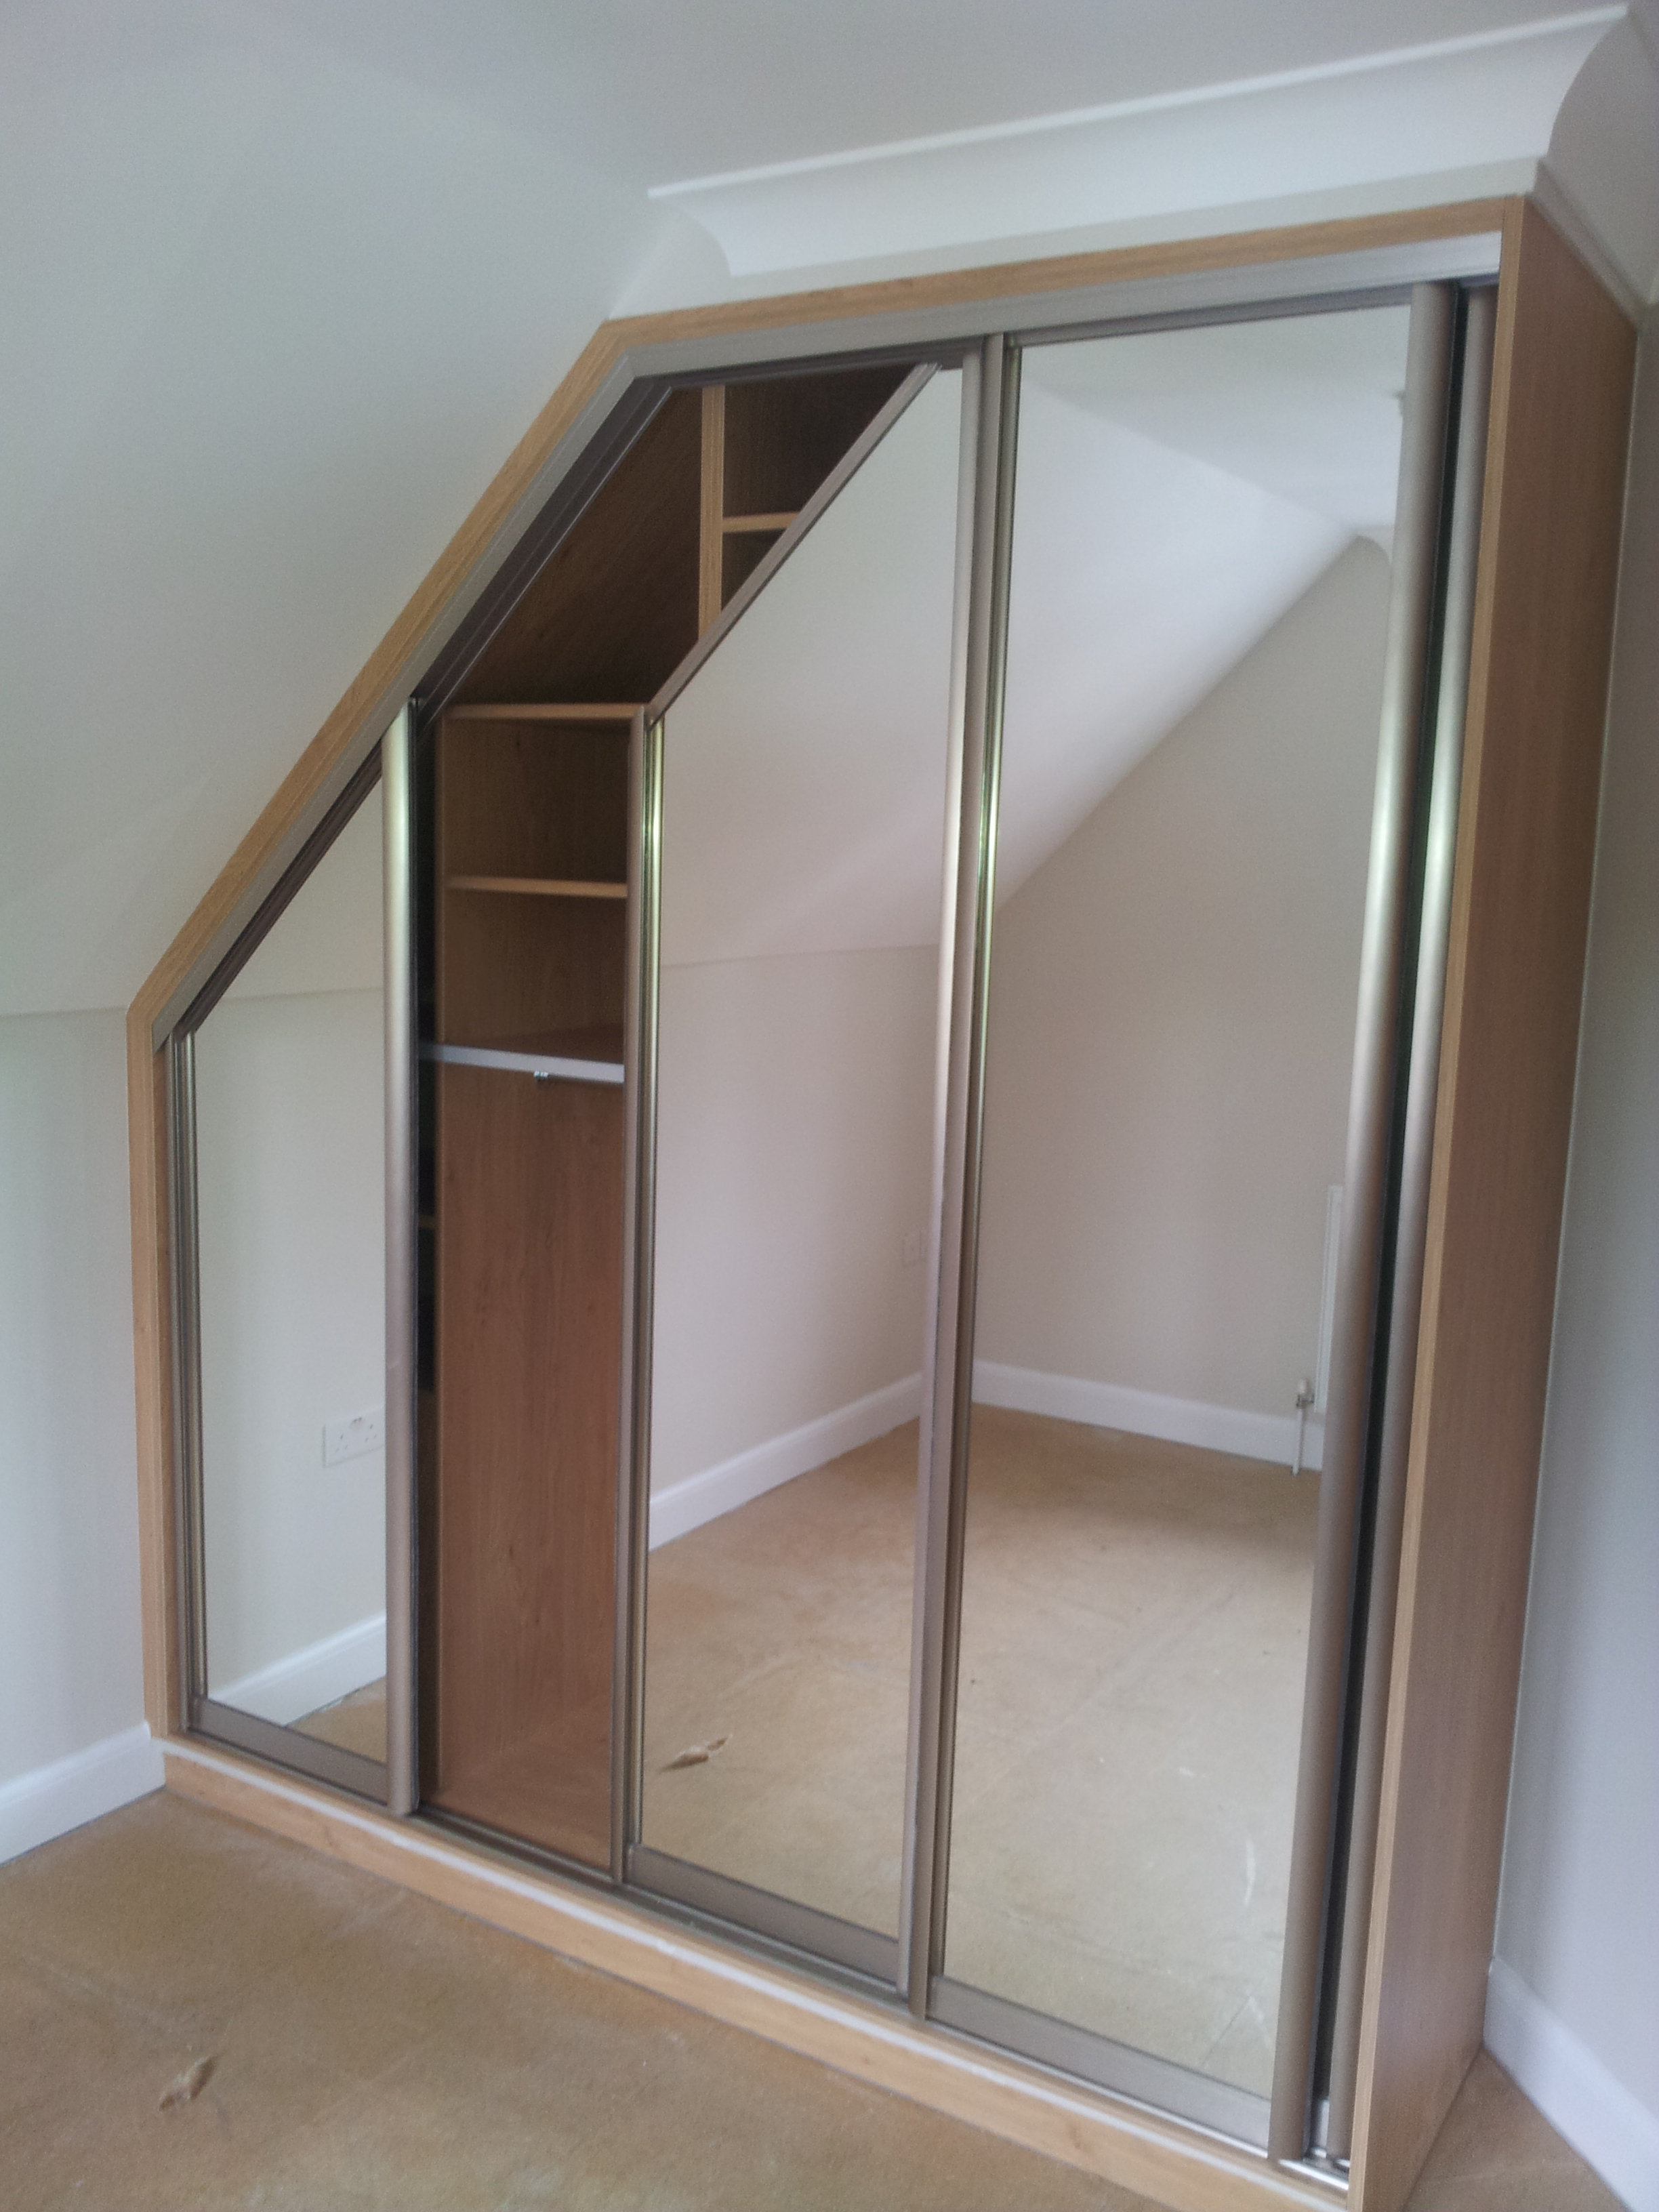 custom-made-wardrobes-1 Discount offers with Affordable finance plans